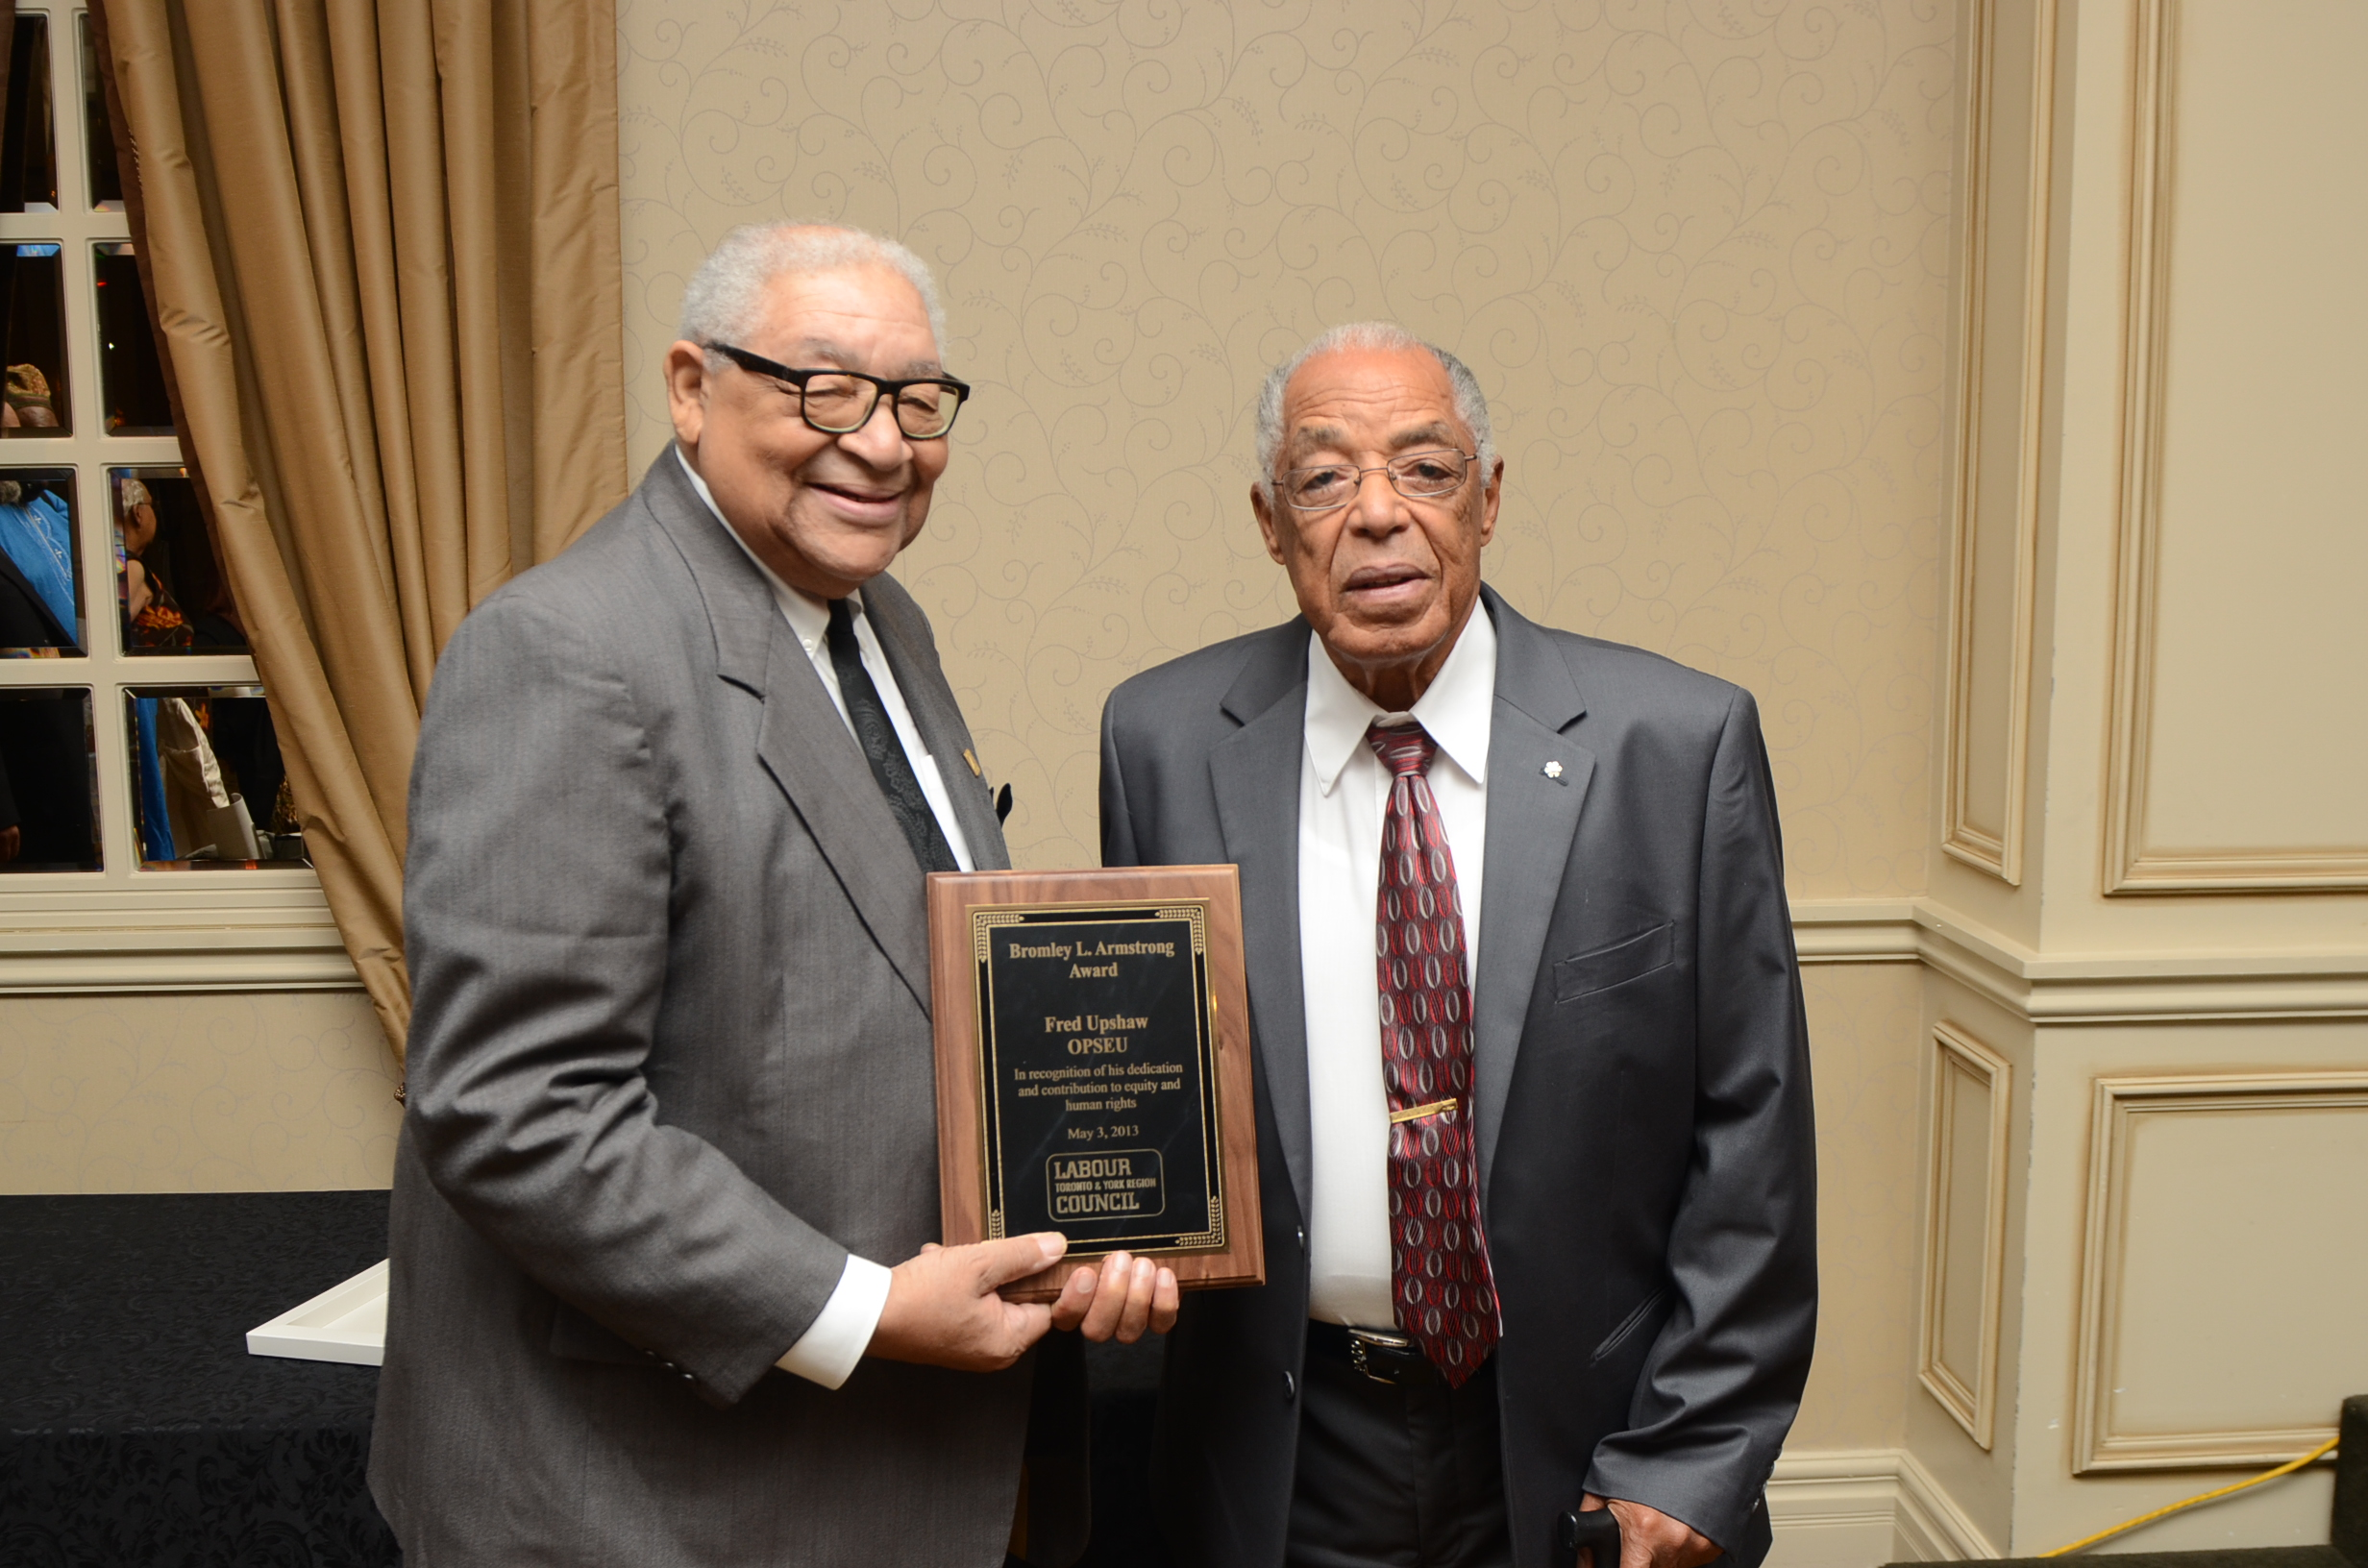 Bromley Armstrong presented the award bearing his name to the late Fred Upshaw in 2013